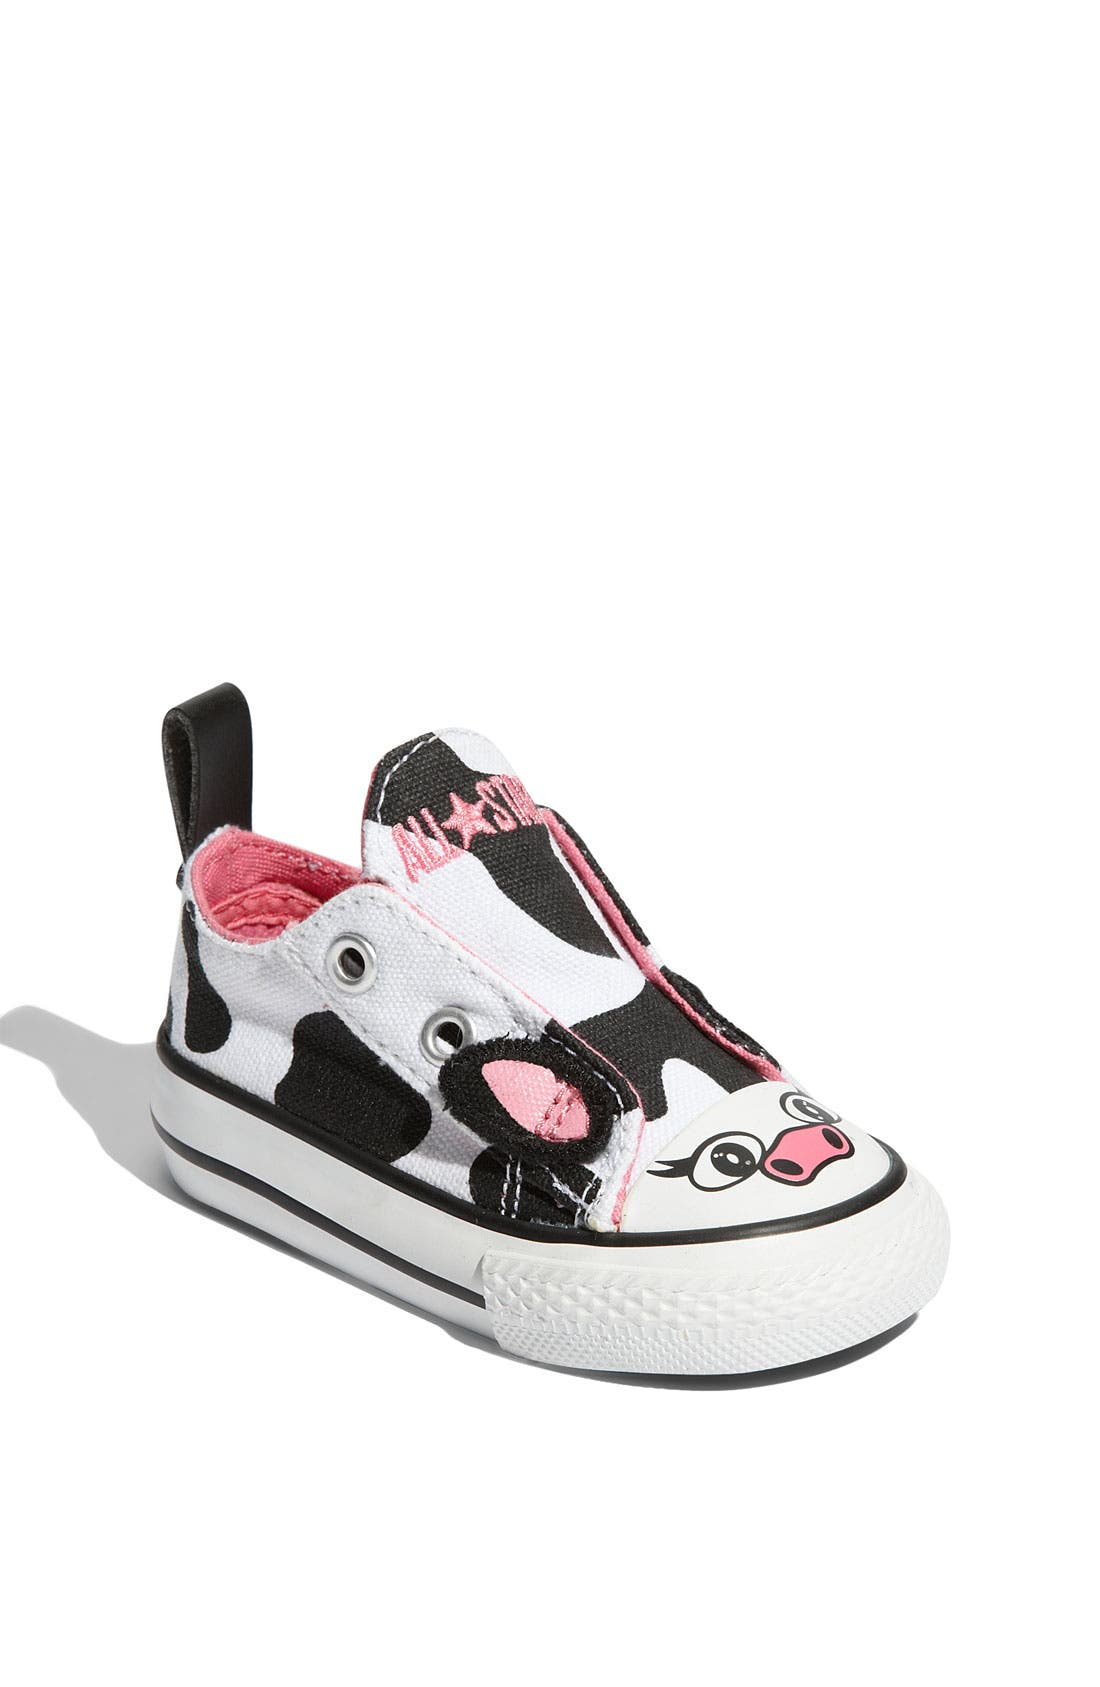 Alternate Image 1 Selected - Converse Chuck Taylor® Animal Print Sneaker (Baby, Walker & Toddler)